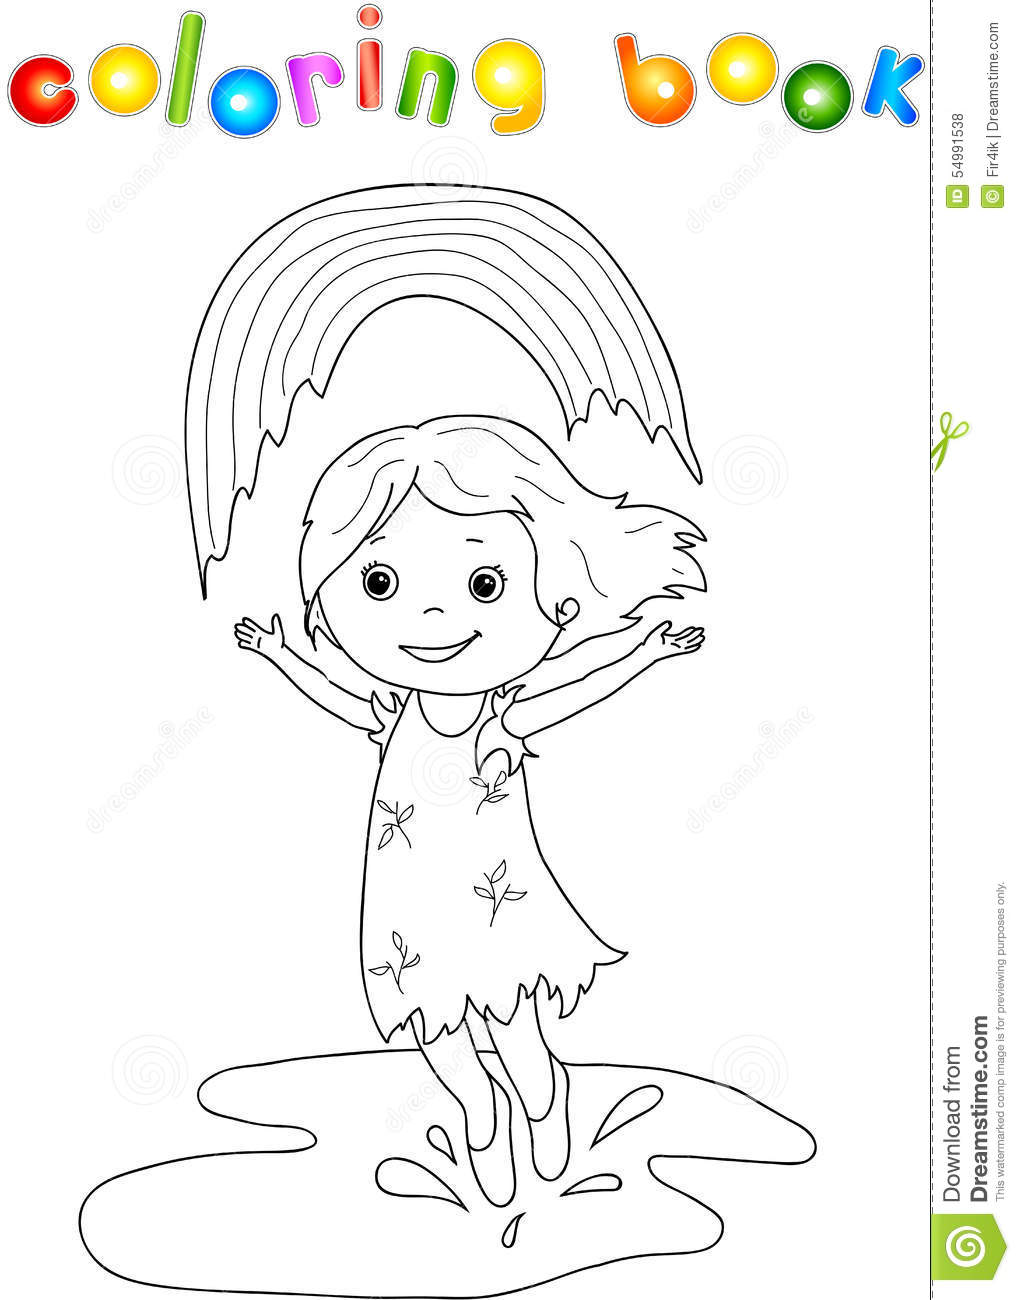 dancing in the rain coloring page in the with rainbow stock vector image 7655